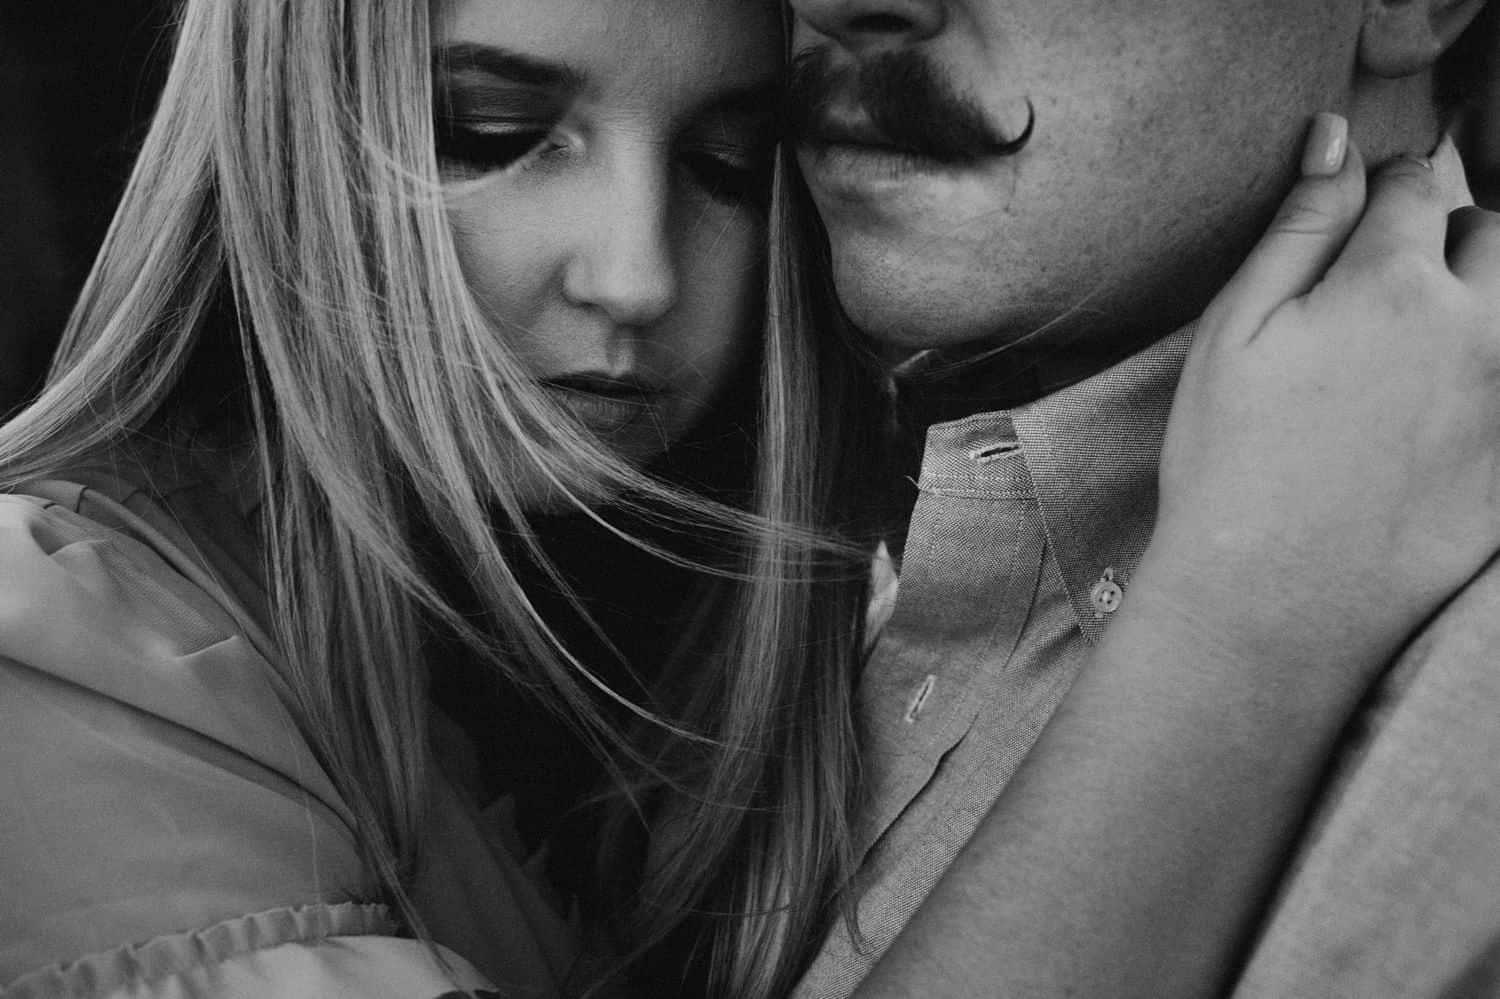 black and white photos of a couple embracing close-up